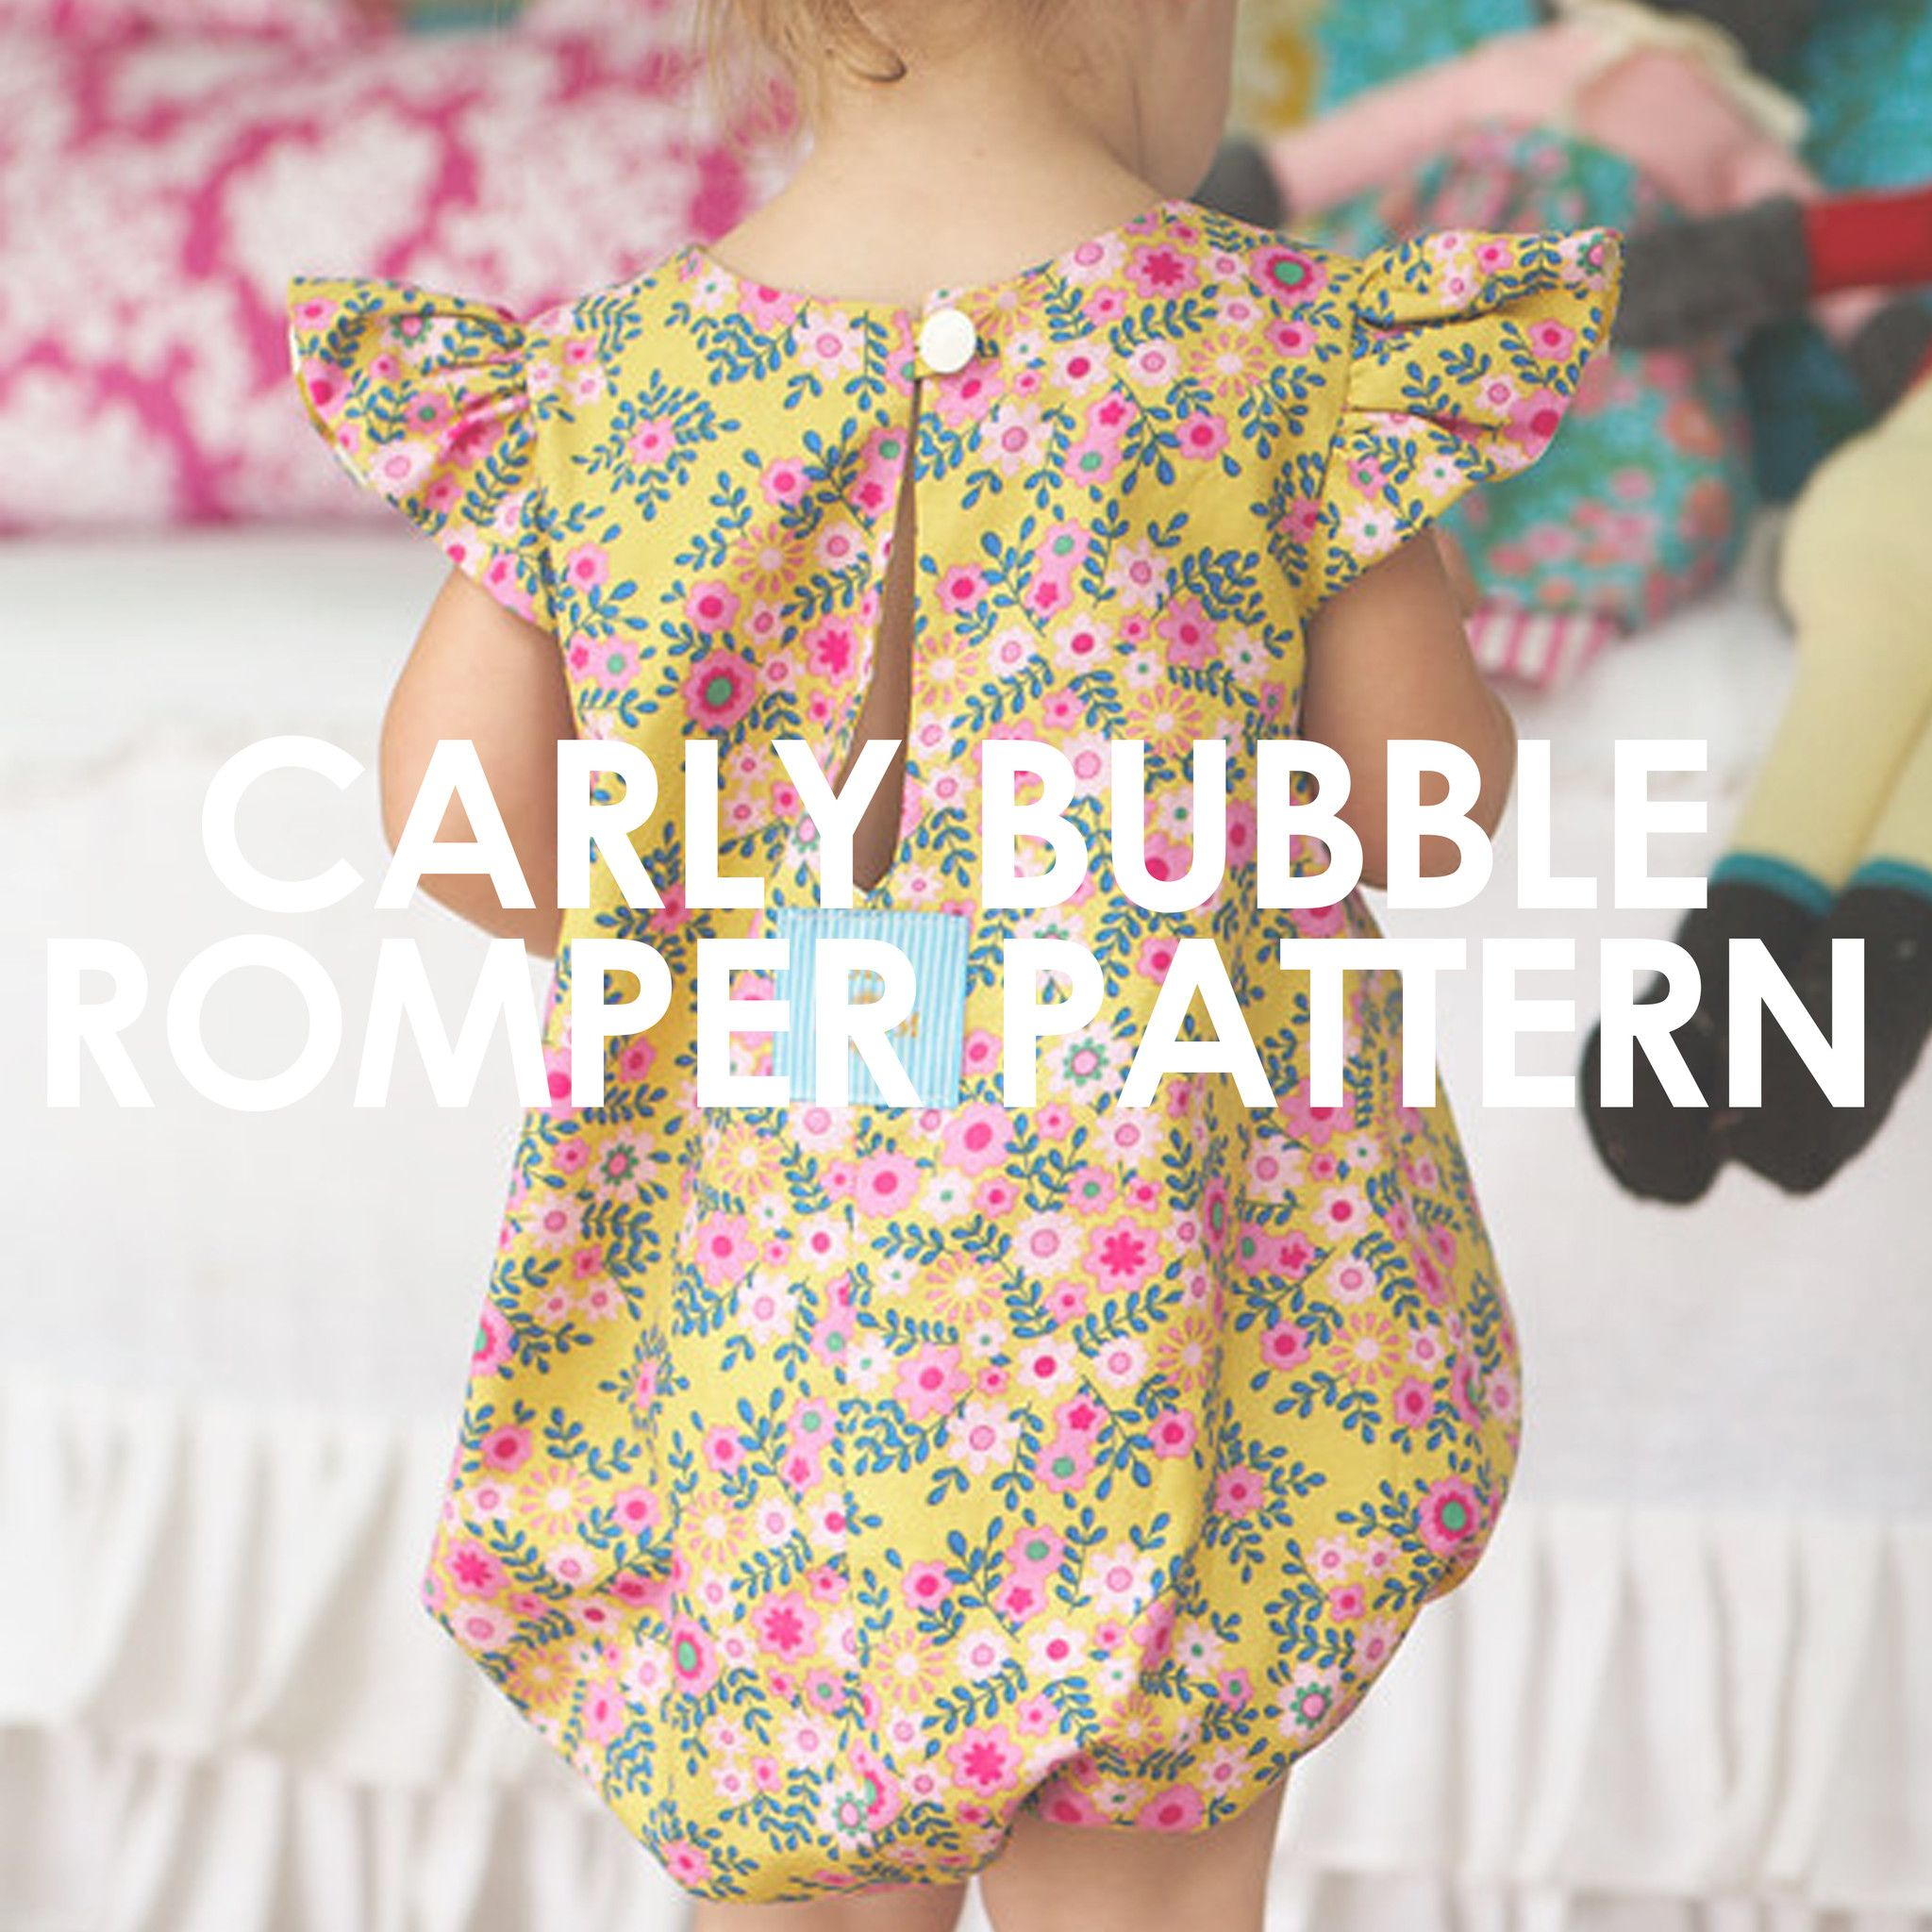 Carly Bubble Romper Sew Featured Baby Romper Pattern